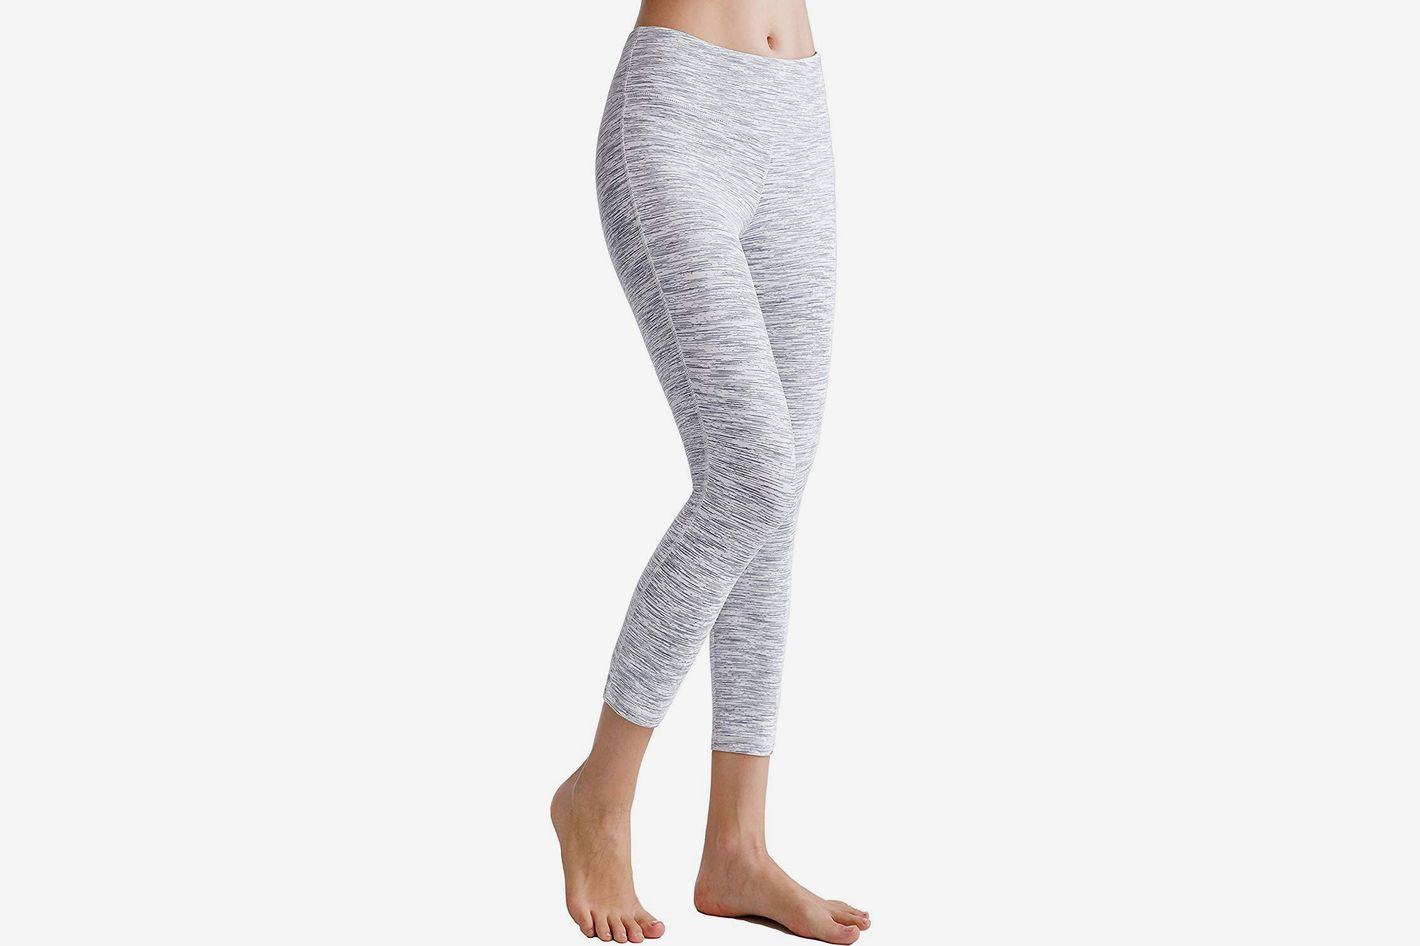 bea3dbedffa662 9 Best Yoga Pants for Women 2019